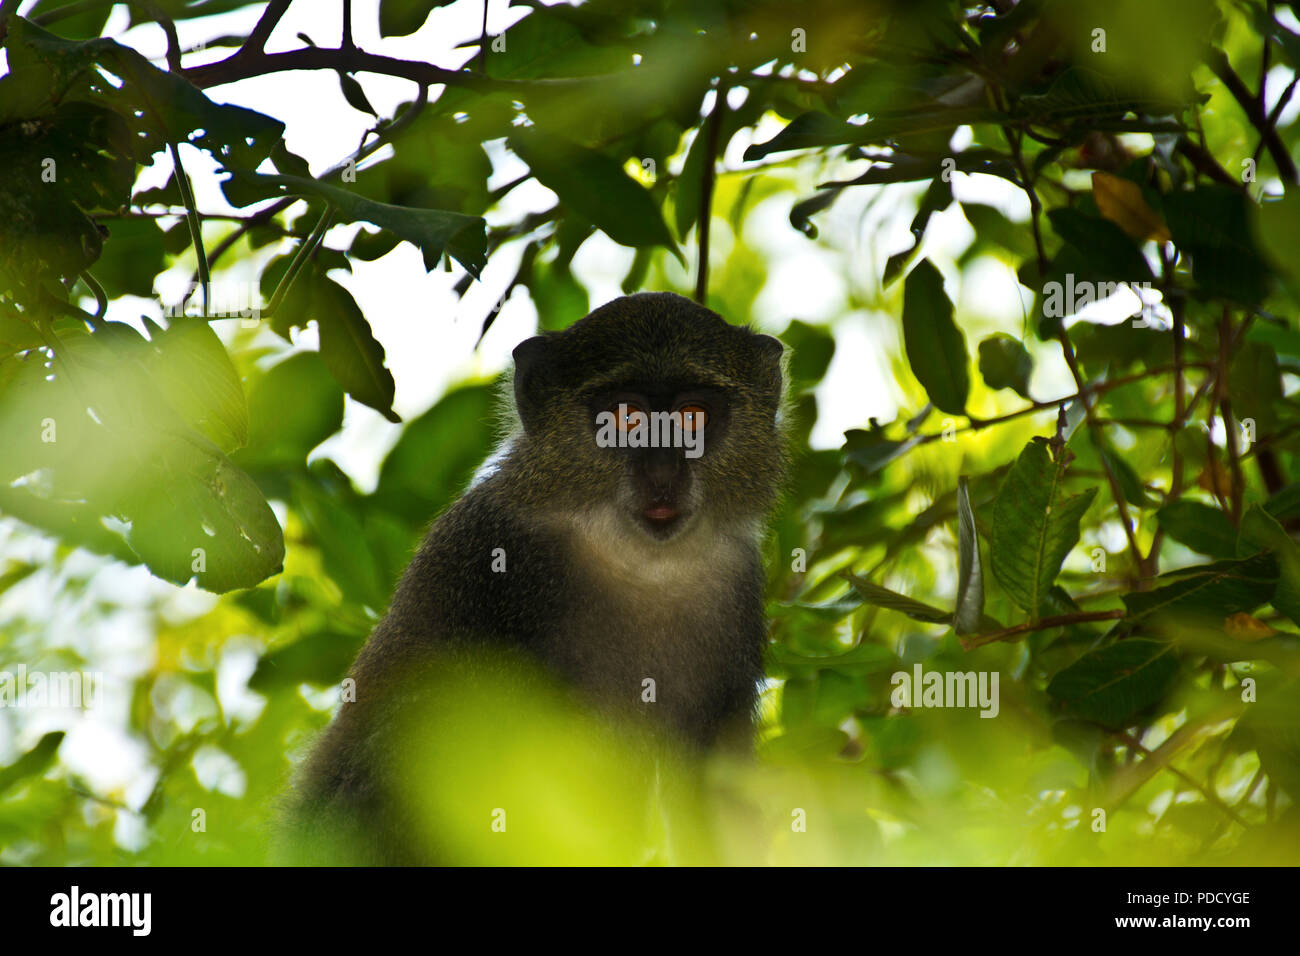 The Syke's or Gentle Monkey is the only other species of primate found on Zanzibar, along with the Red Colobus and Humans. - Stock Image